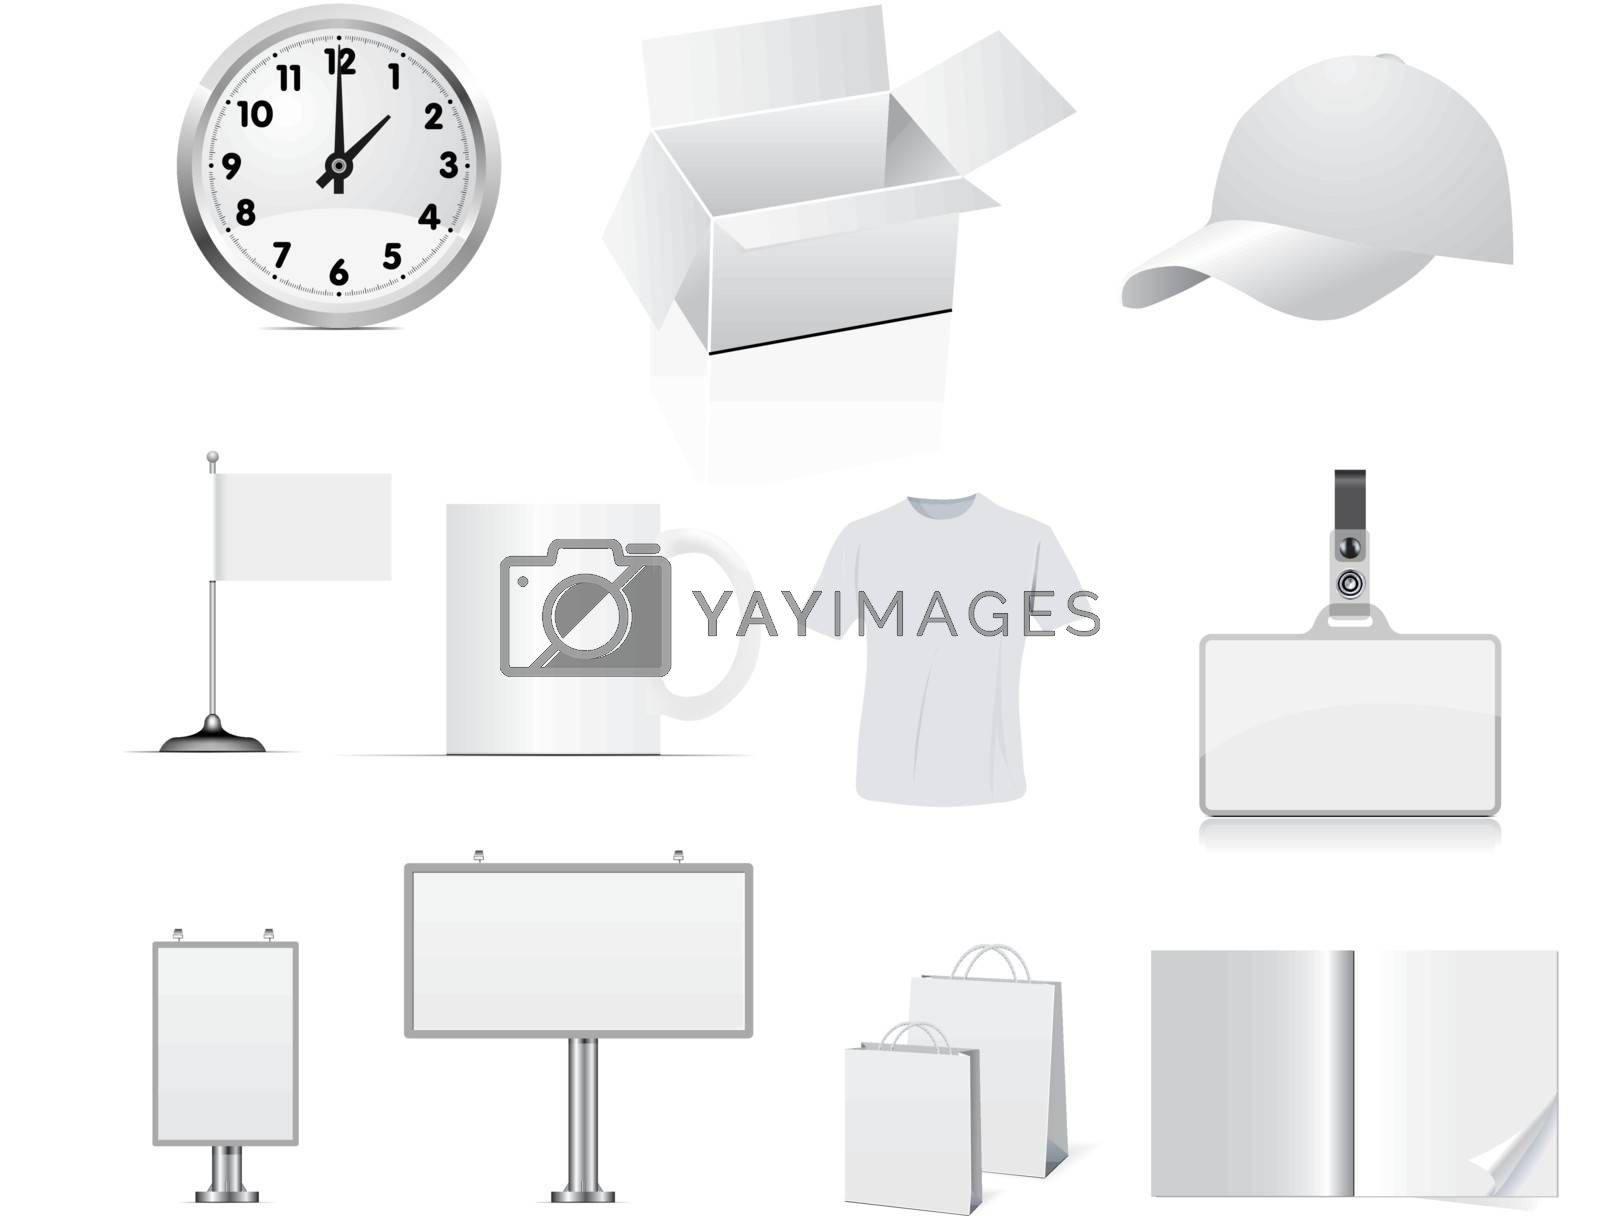 elements of corporate identity for the company on white